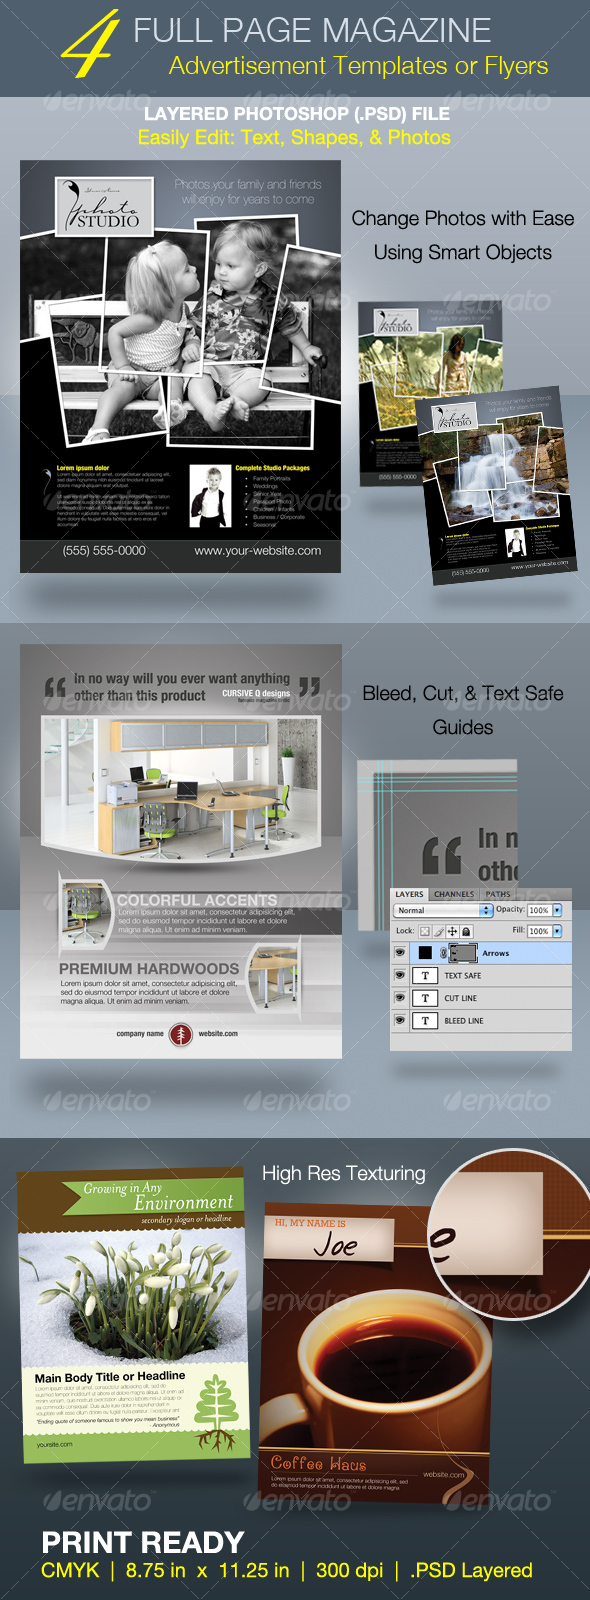 Full Page Magazine Ad or Flyer Templates